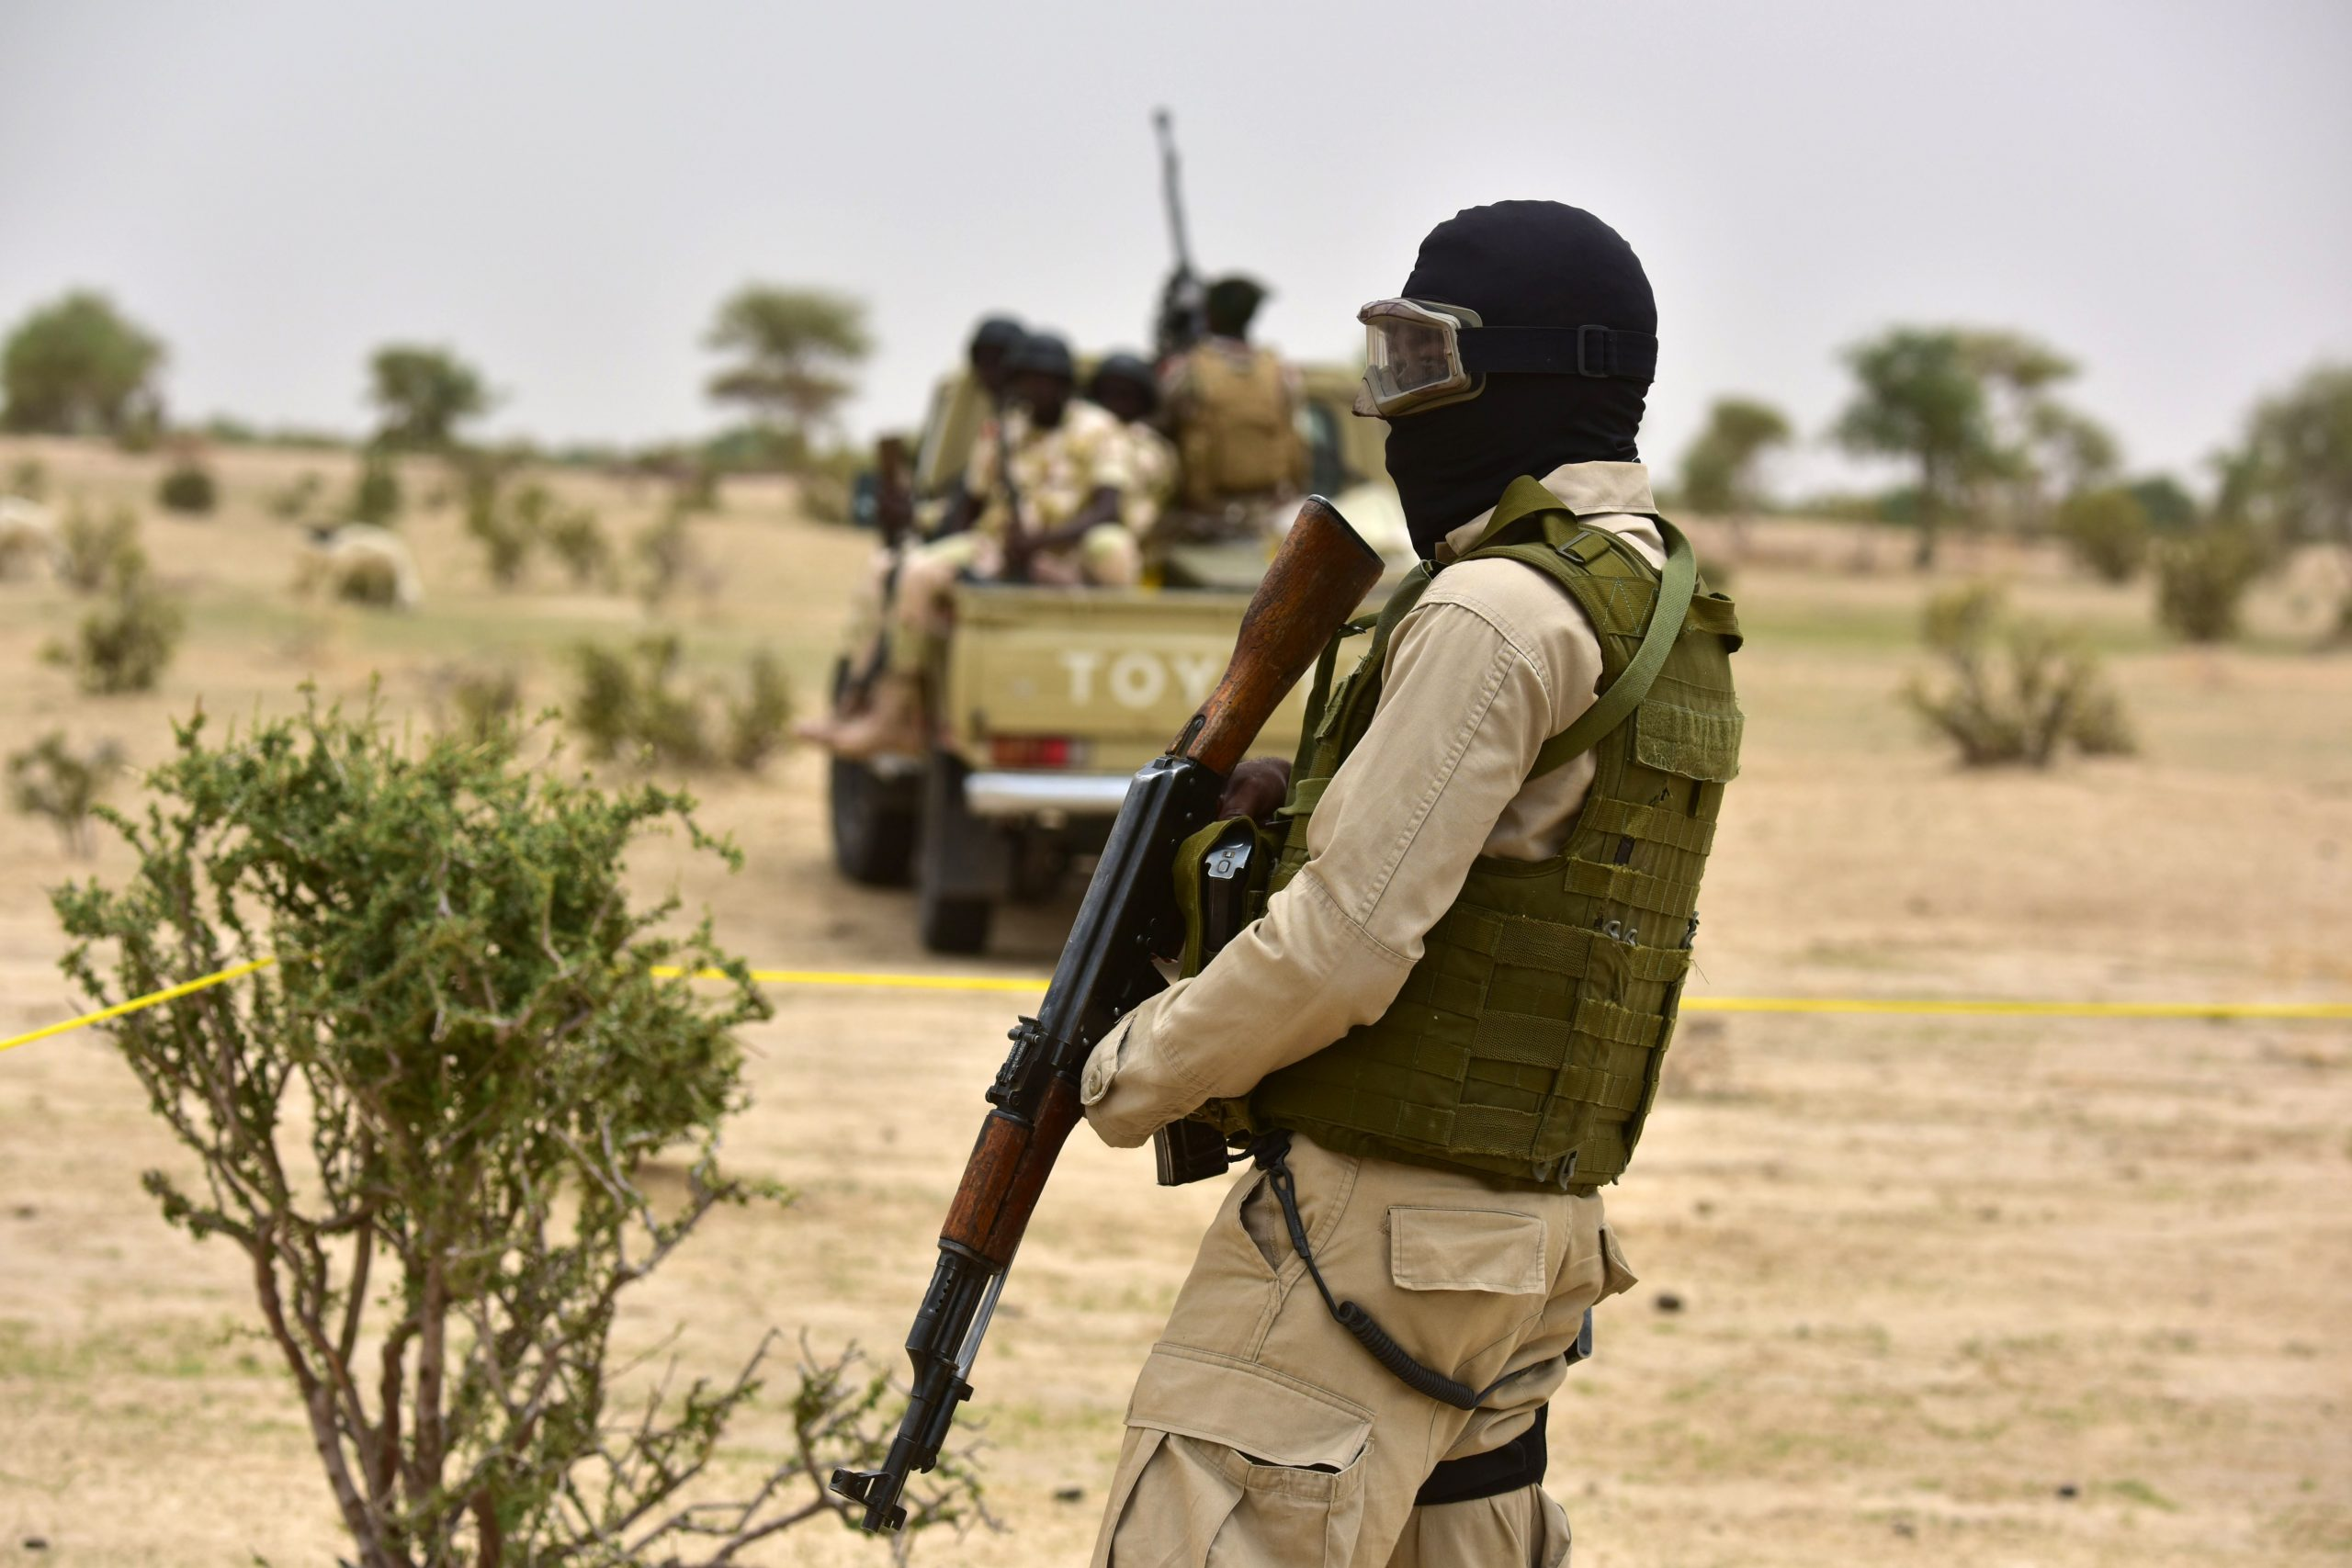 Hooded members of Niger's armed forces patrol during a visit of Niger's Interior Minister to a camp for displaced populations.